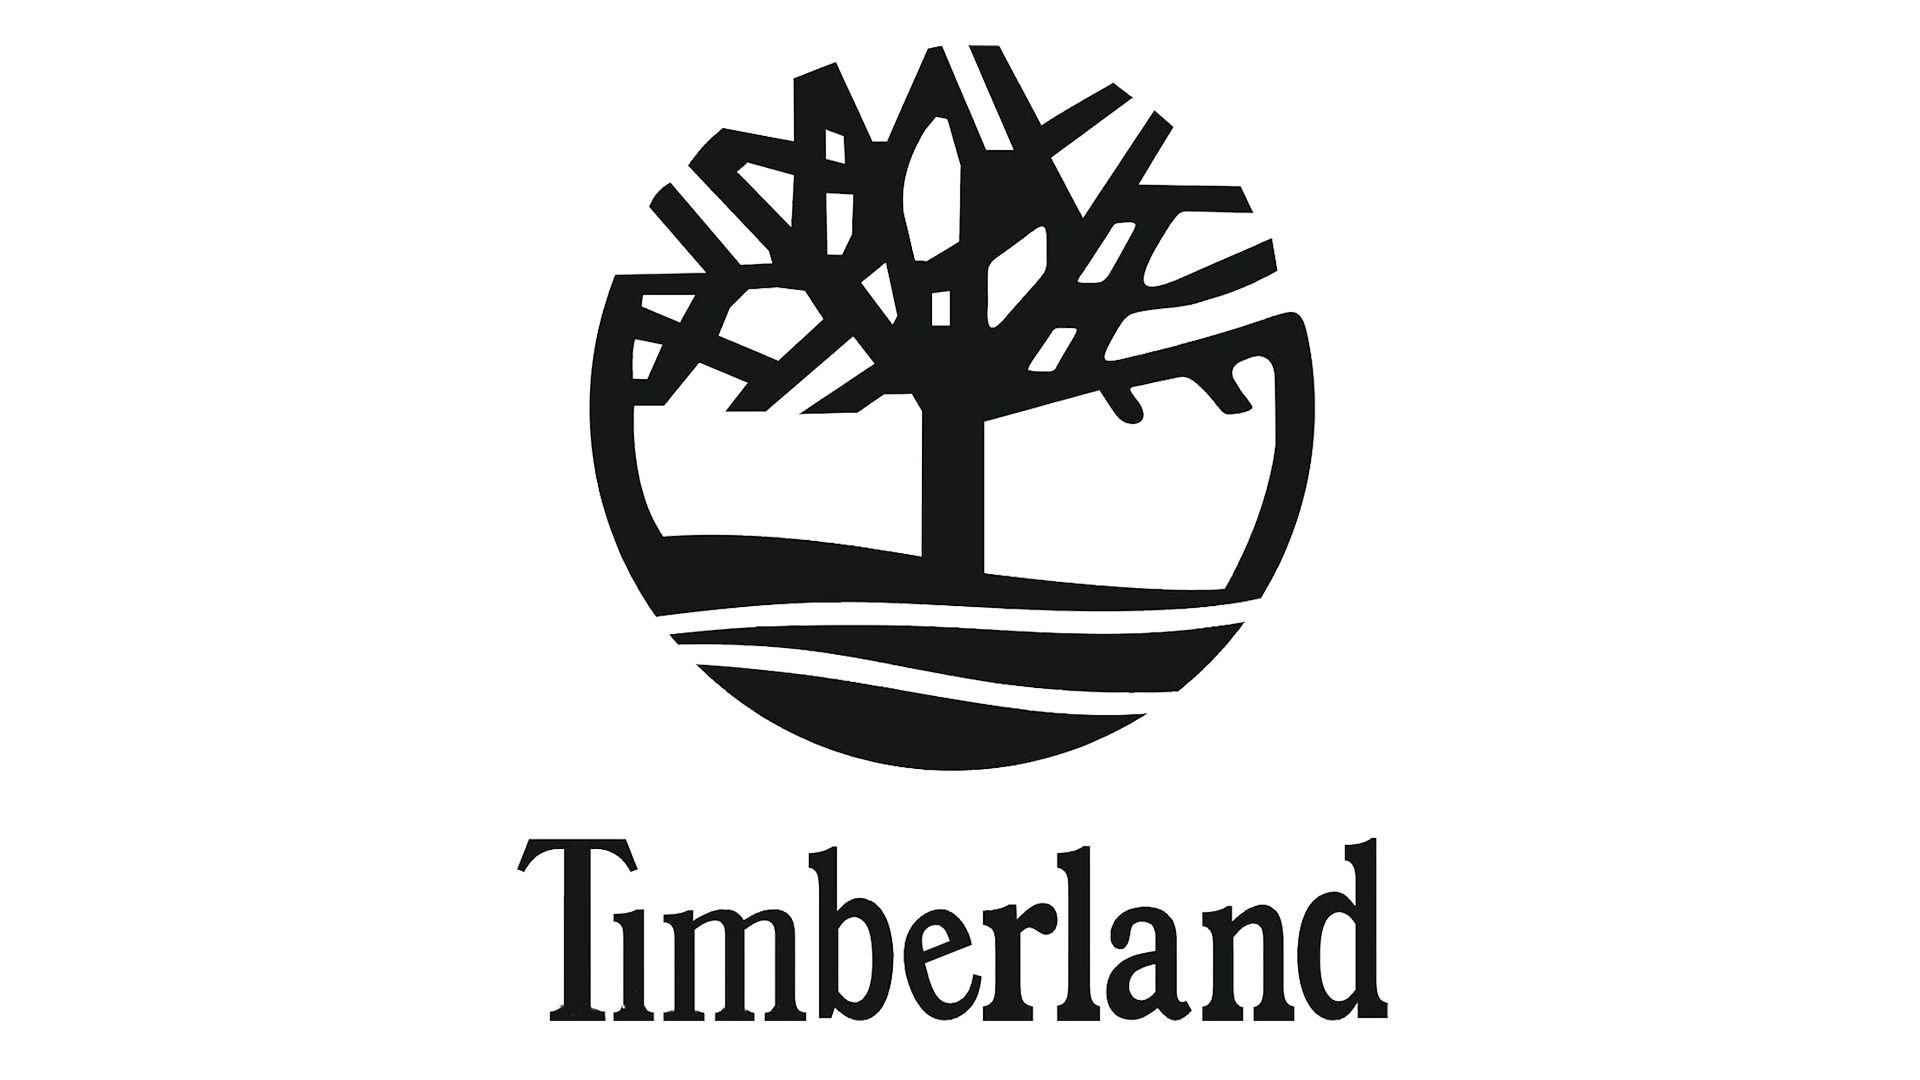 Timberland Influencer Marketing Campaign